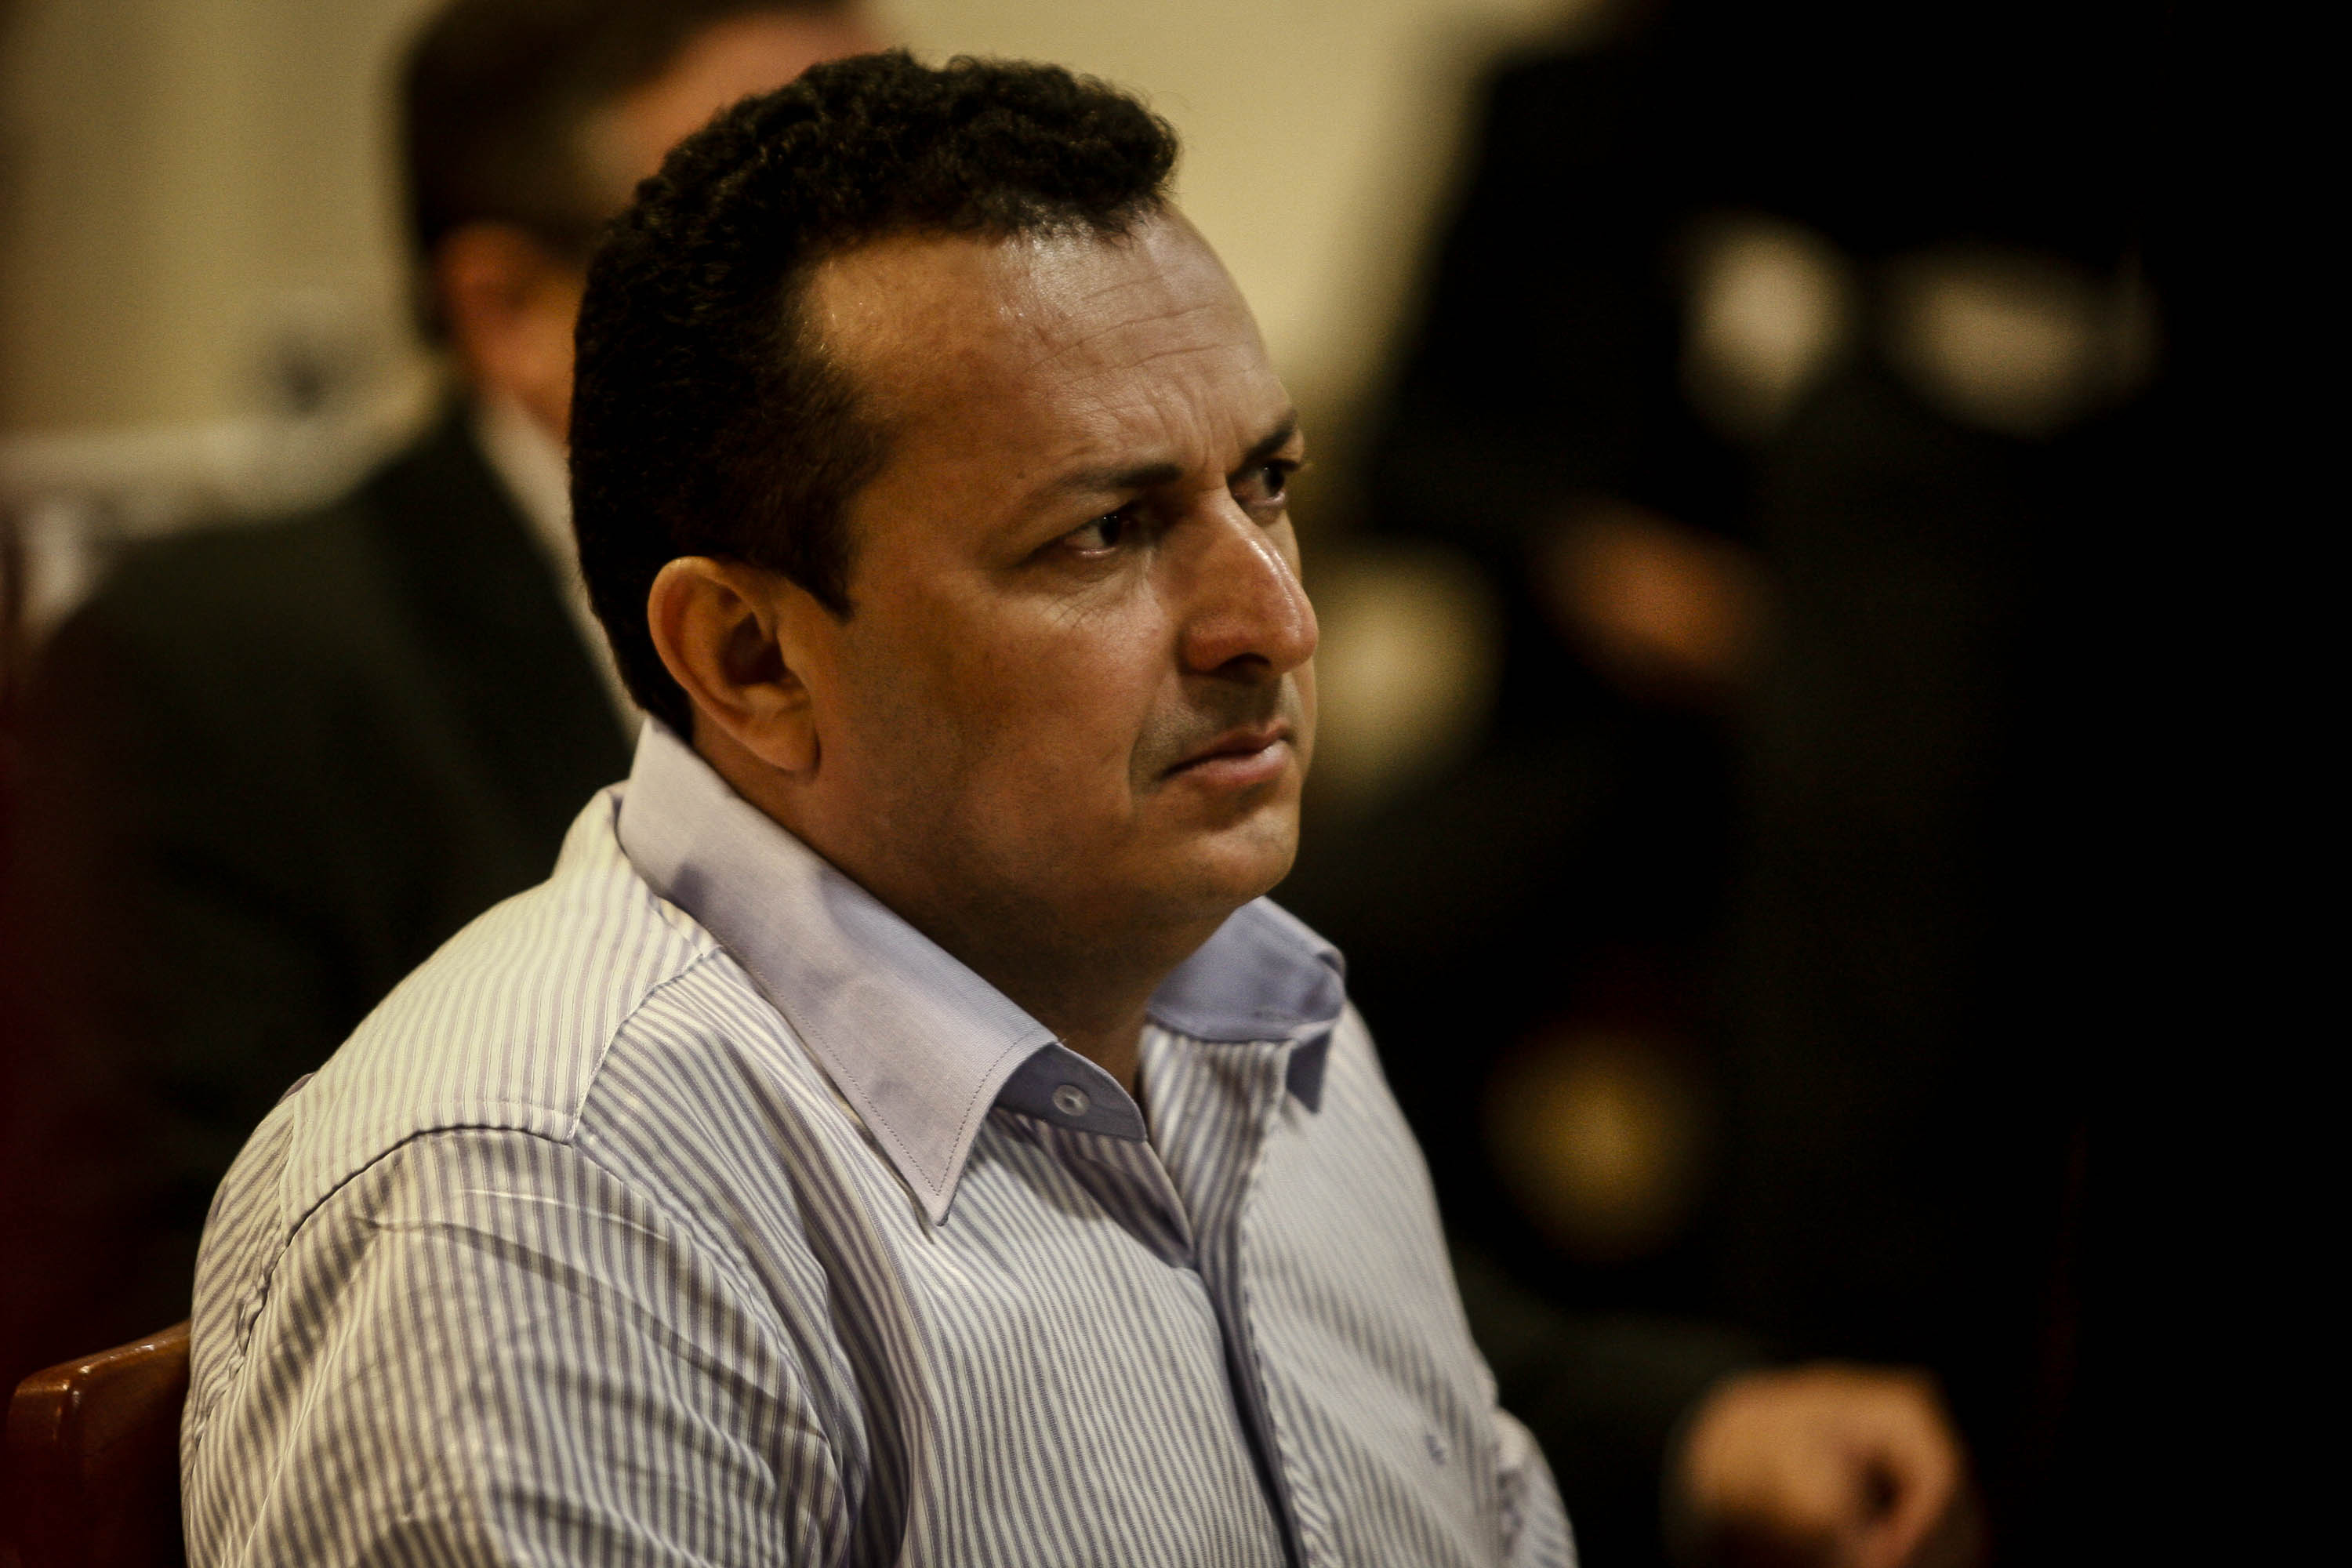 The farmer Vitalmiro Bastos de Moura, accused of ordering the death of american missionary Dorothy Stang during trial.